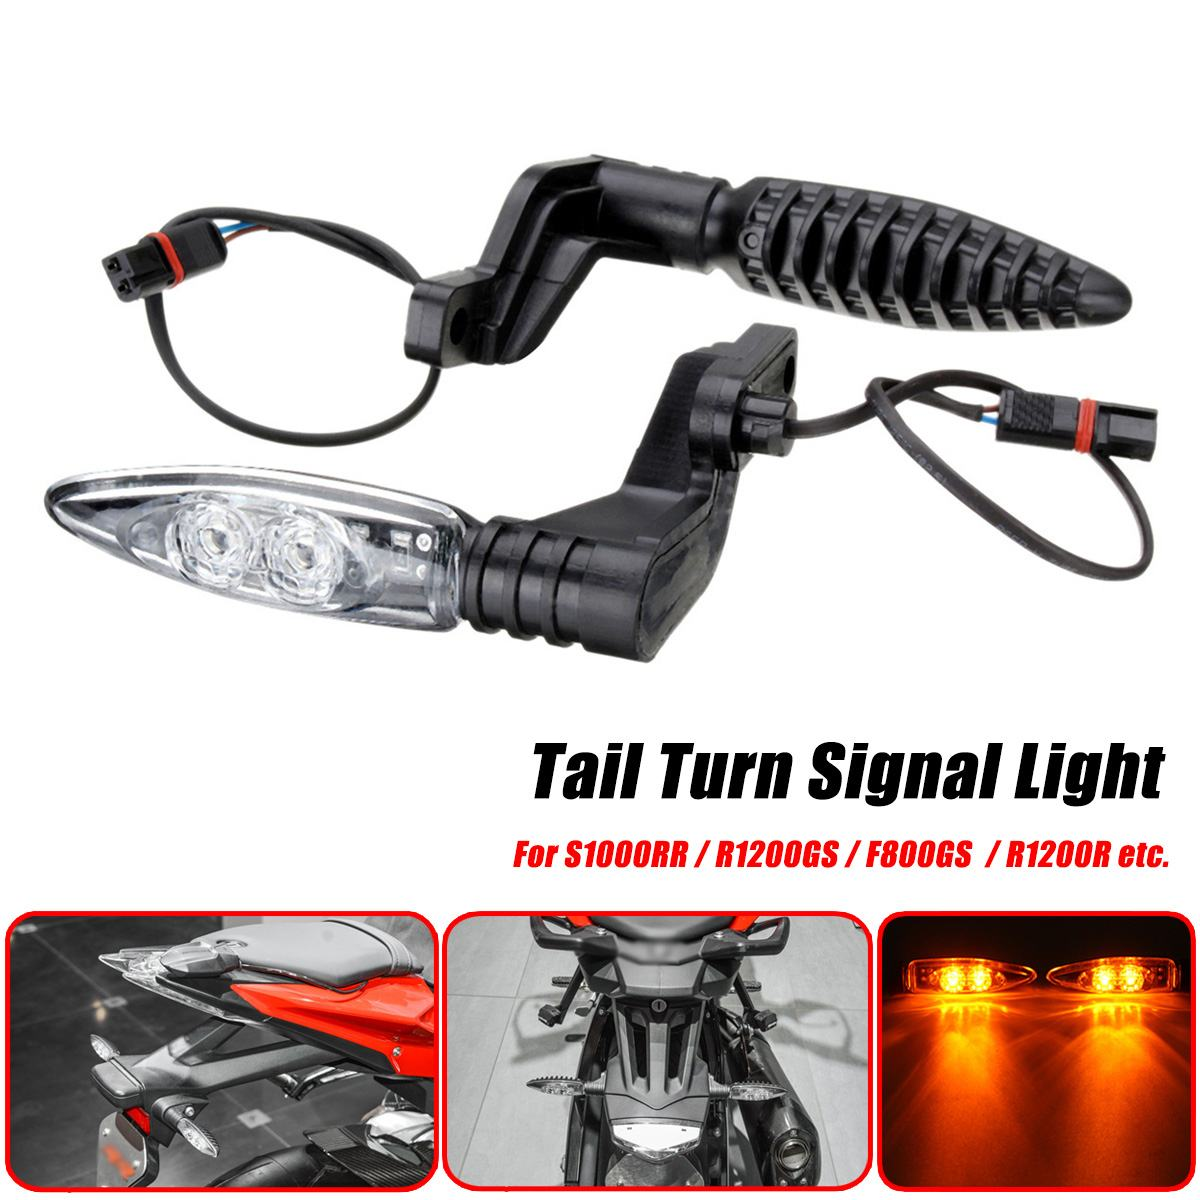 Pair 12V Motorcycle <font><b>LED</b></font> Turn Signal Lights Indicator Blinker Lamps For BMW S1000R S1000RR S1000XR R1200GS <font><b>R1200R</b></font> <font><b>R1200R</b></font> image